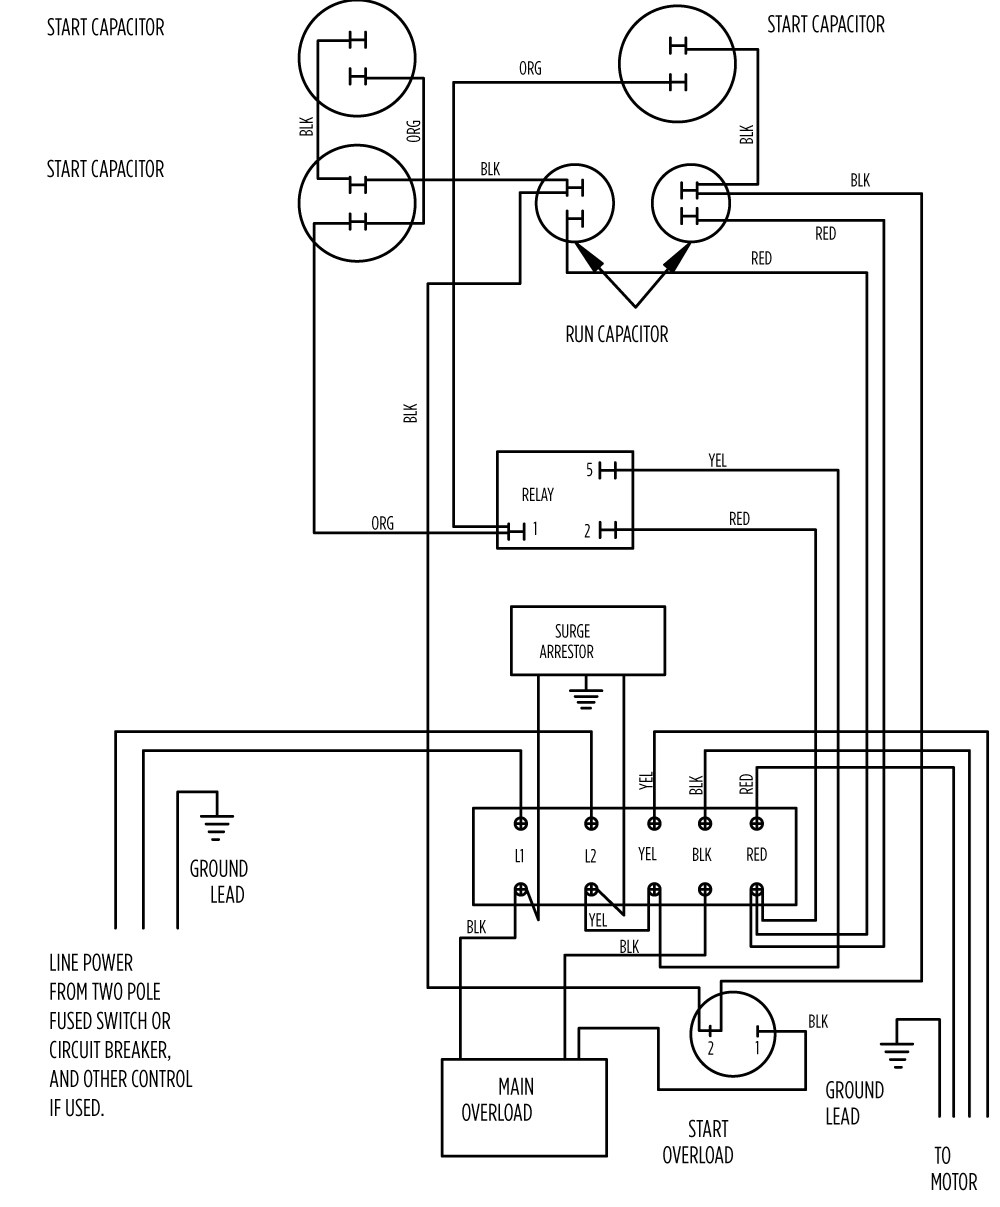 aim manual page 57 single phase motors and controls motor rh franklinwater com electrical controlling diagram electrical control diagram hvac